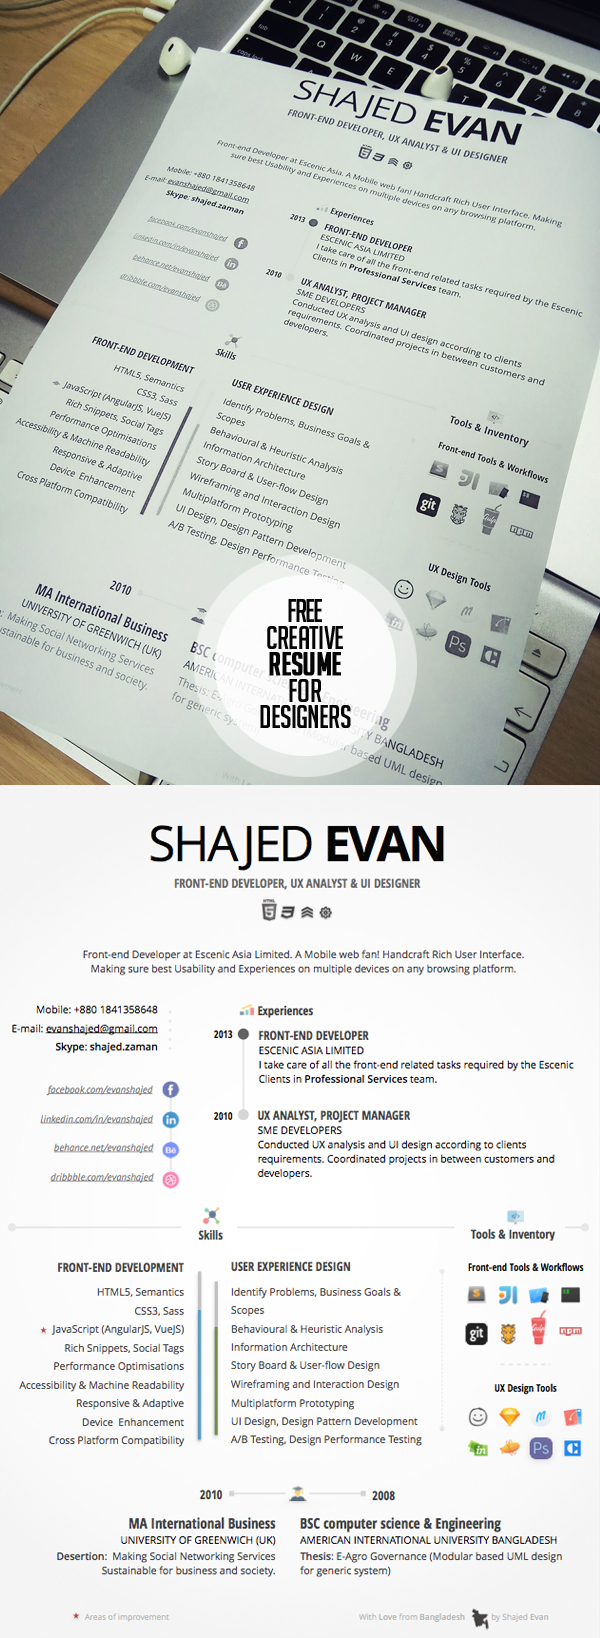 Free Creative Resume for Designers & Developers